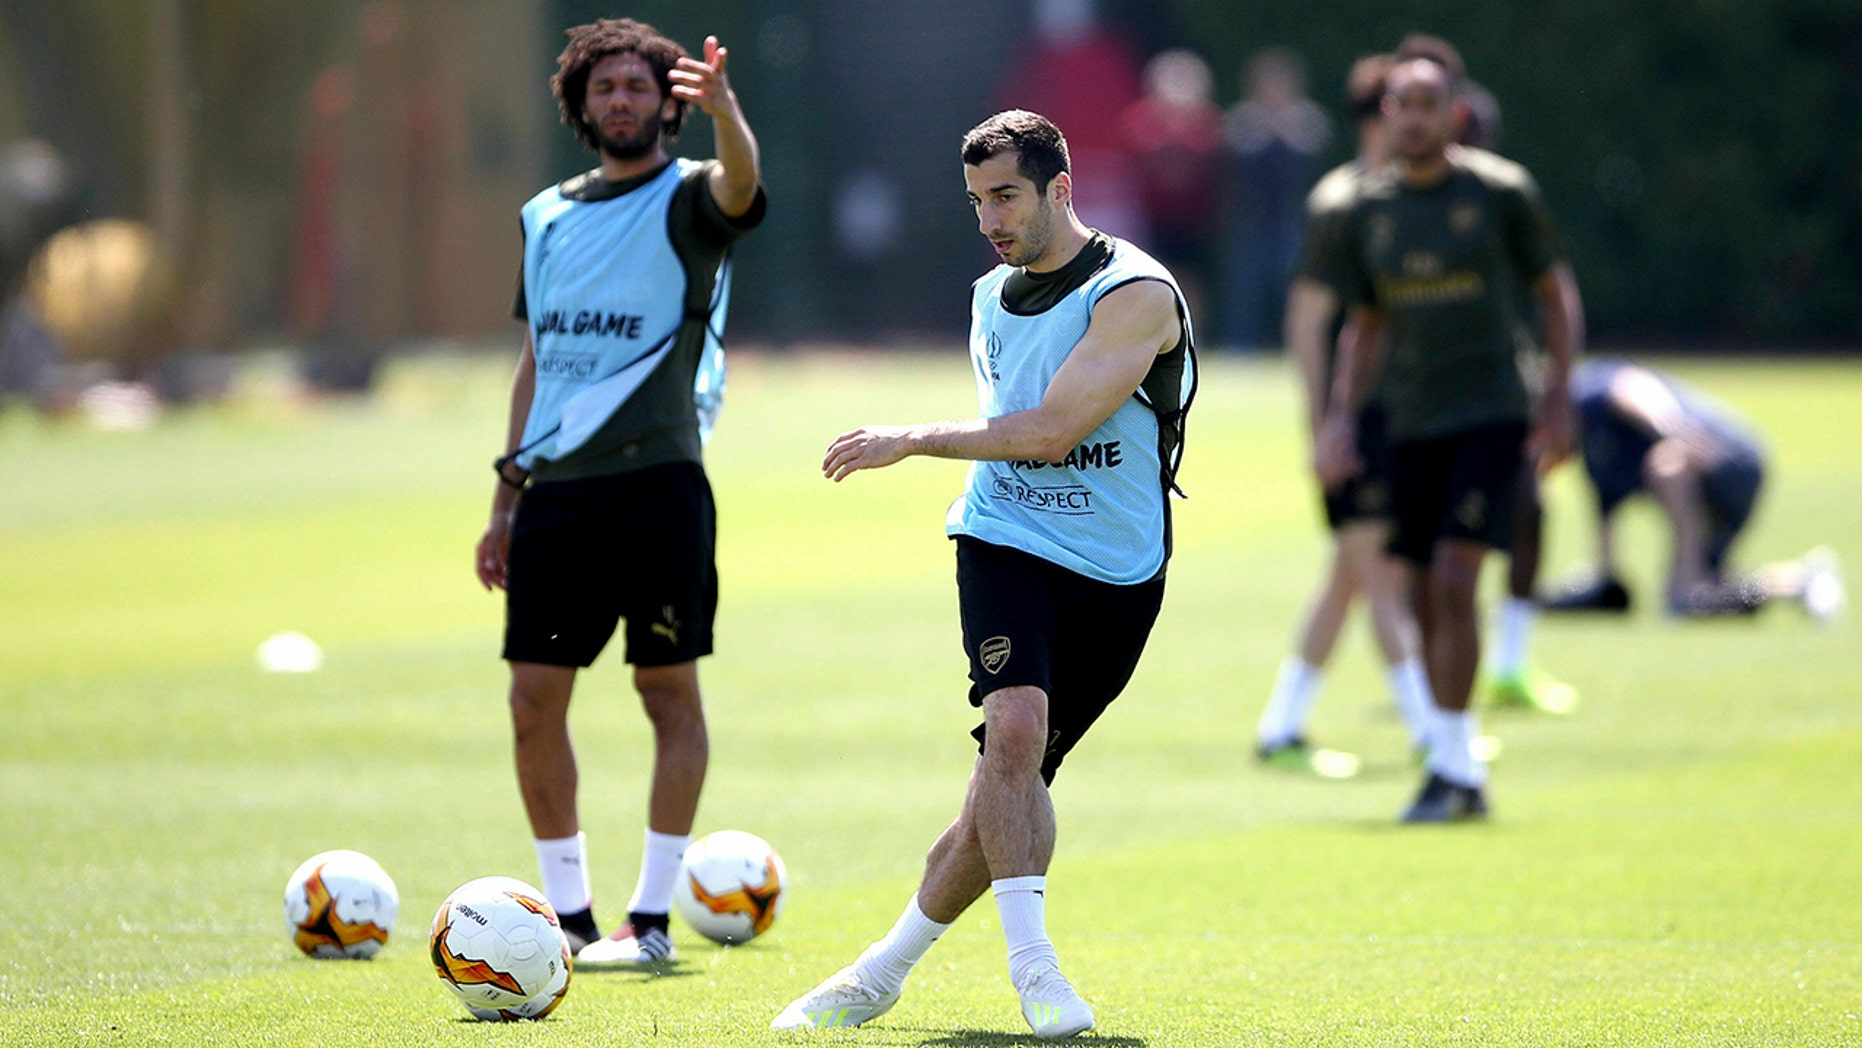 Arsenal's Henrikh Mkhitaryan during a training session at London Colney, England, Tuesday May 21, 2019, ahead of the Europa League Final against Chelsea on Wednesday May 29. (Tim Goode/PA via AP)